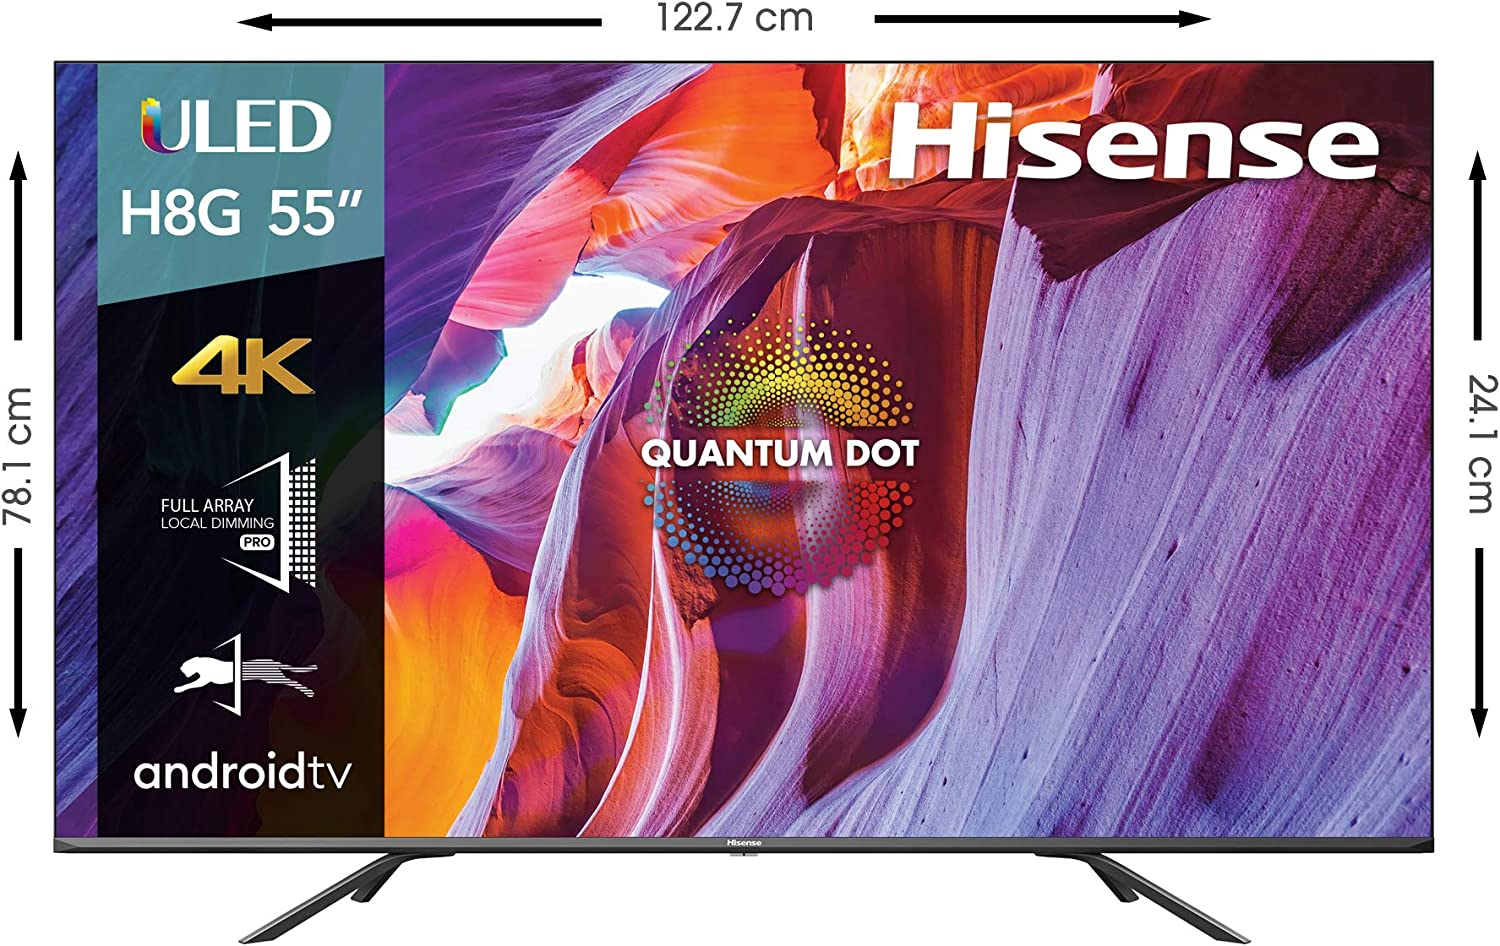 Hisense 55 Inch Class H8 Quantum Series Android 4k Uled Smart Tv With Voice Remote 55h8g 2020 Model Electronics